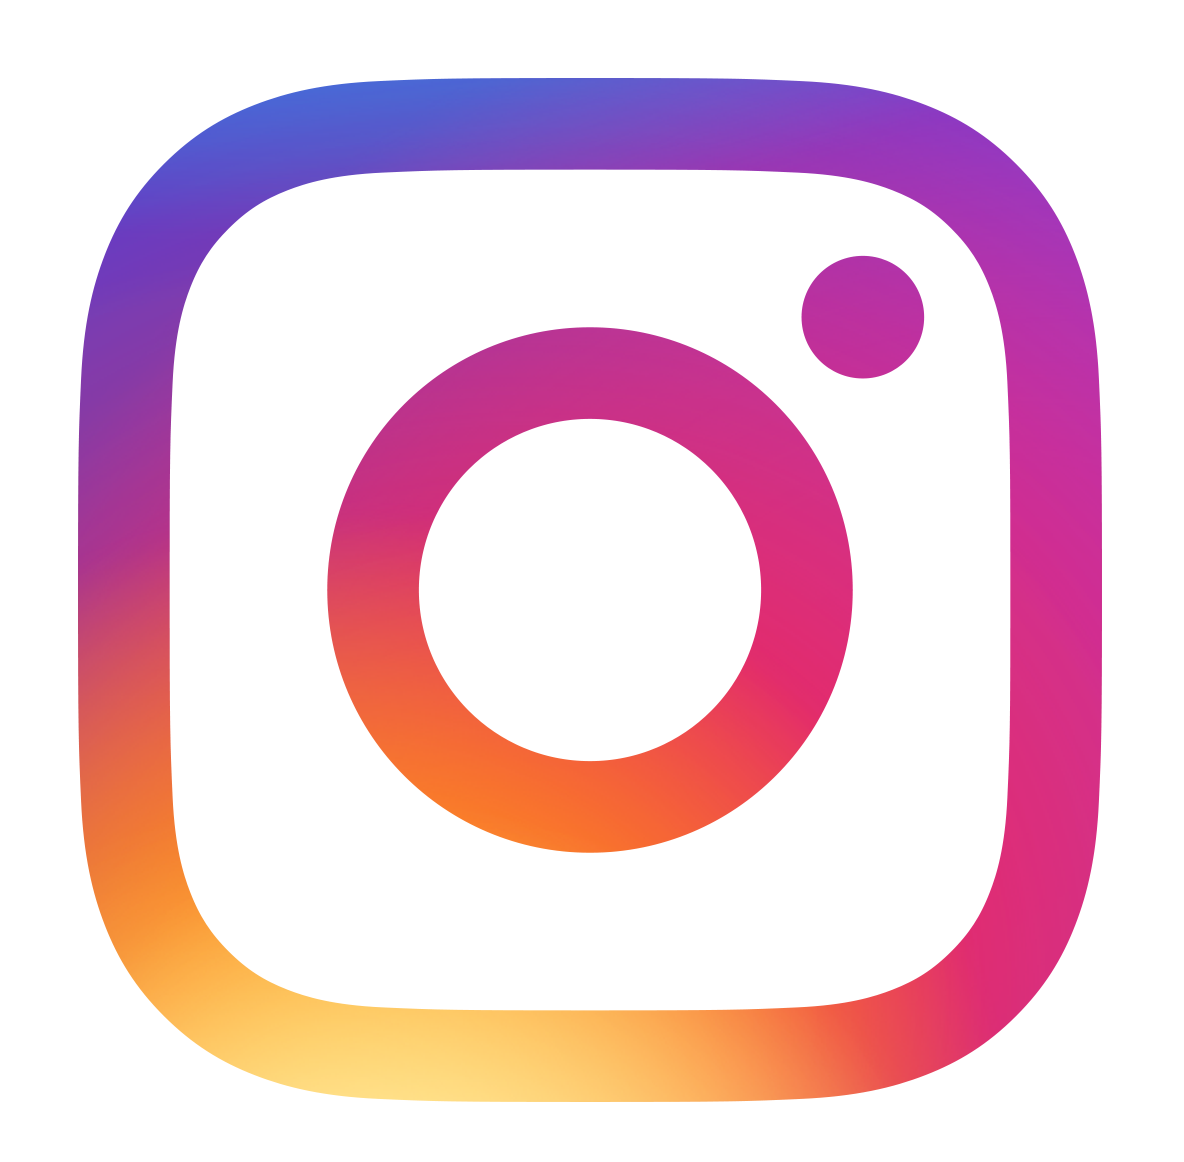 multicolored instagram icon with link to The Orchards Mall instagram page